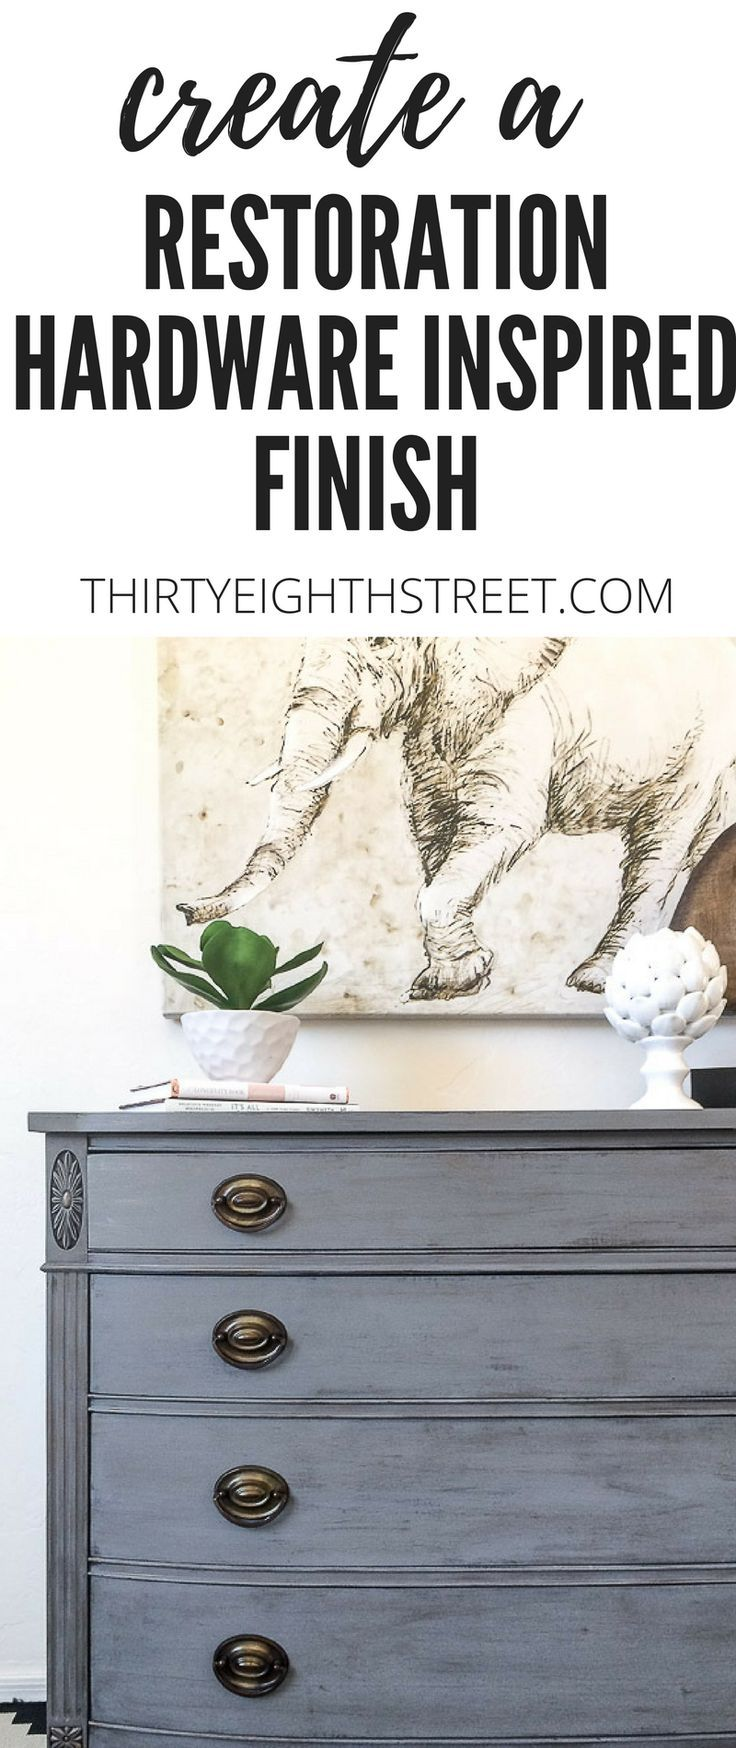 How To Create An Easy Restoration Hardware Faux Finish. Dry Brushing Tutorial With Tips and Tricks To Help YOU Get  A Lovely Weathered RH Look!   Thirty Eighth Street